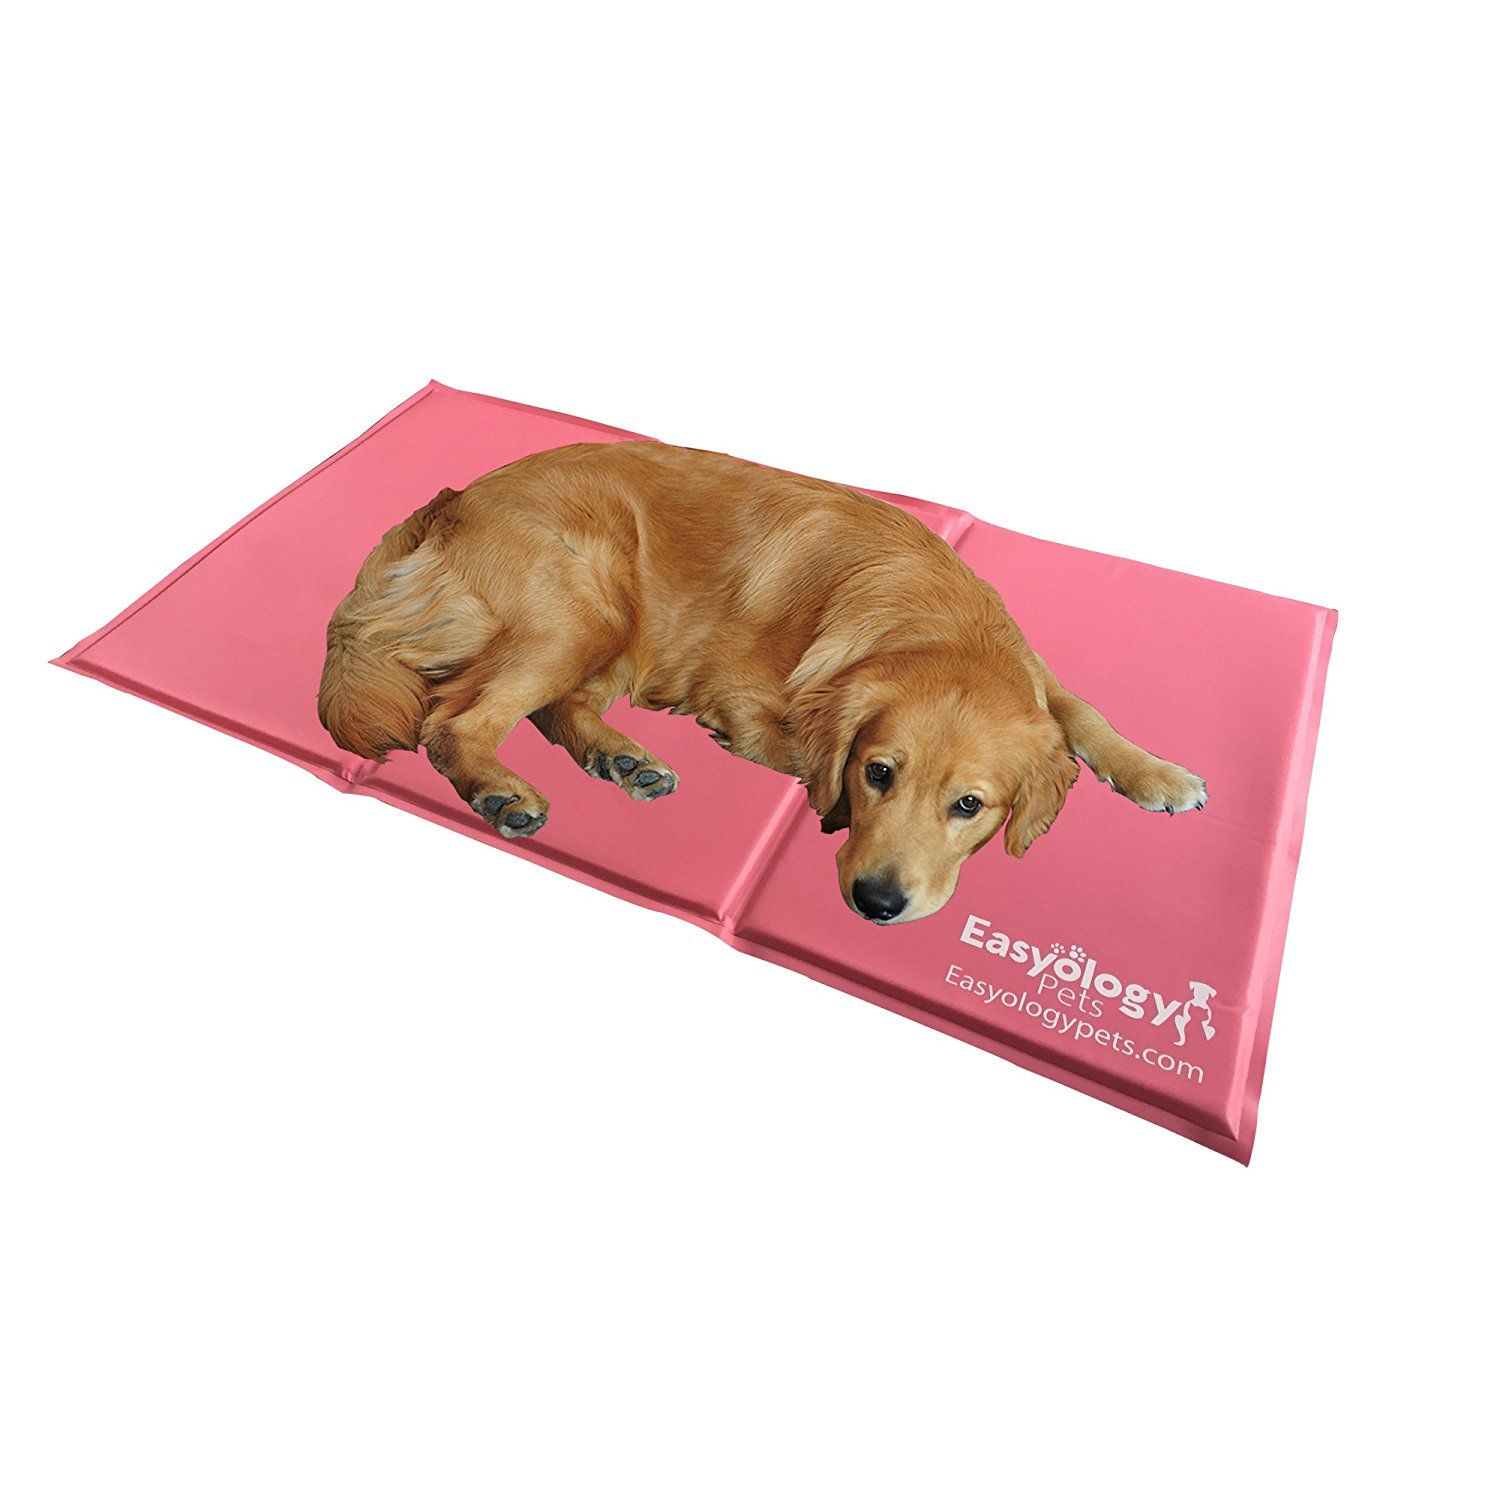 Jumbo Pet Cooling Mat Cold Gel Pad For Cats And Dogs Best For Keeping Large Pets Cool Perfect Size For Couch Fits The Easyology Pet Cooling Mat Cat Bed